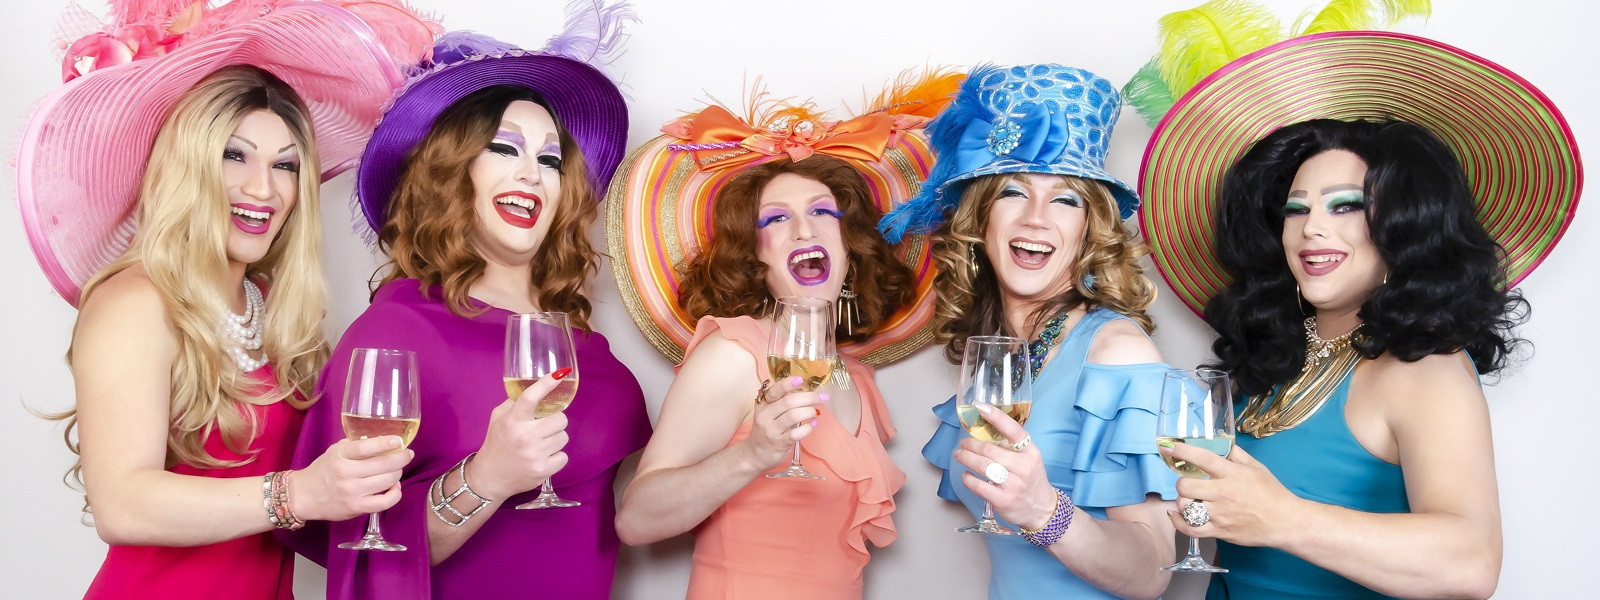 The Housewives of Secaucus: What a Drag!